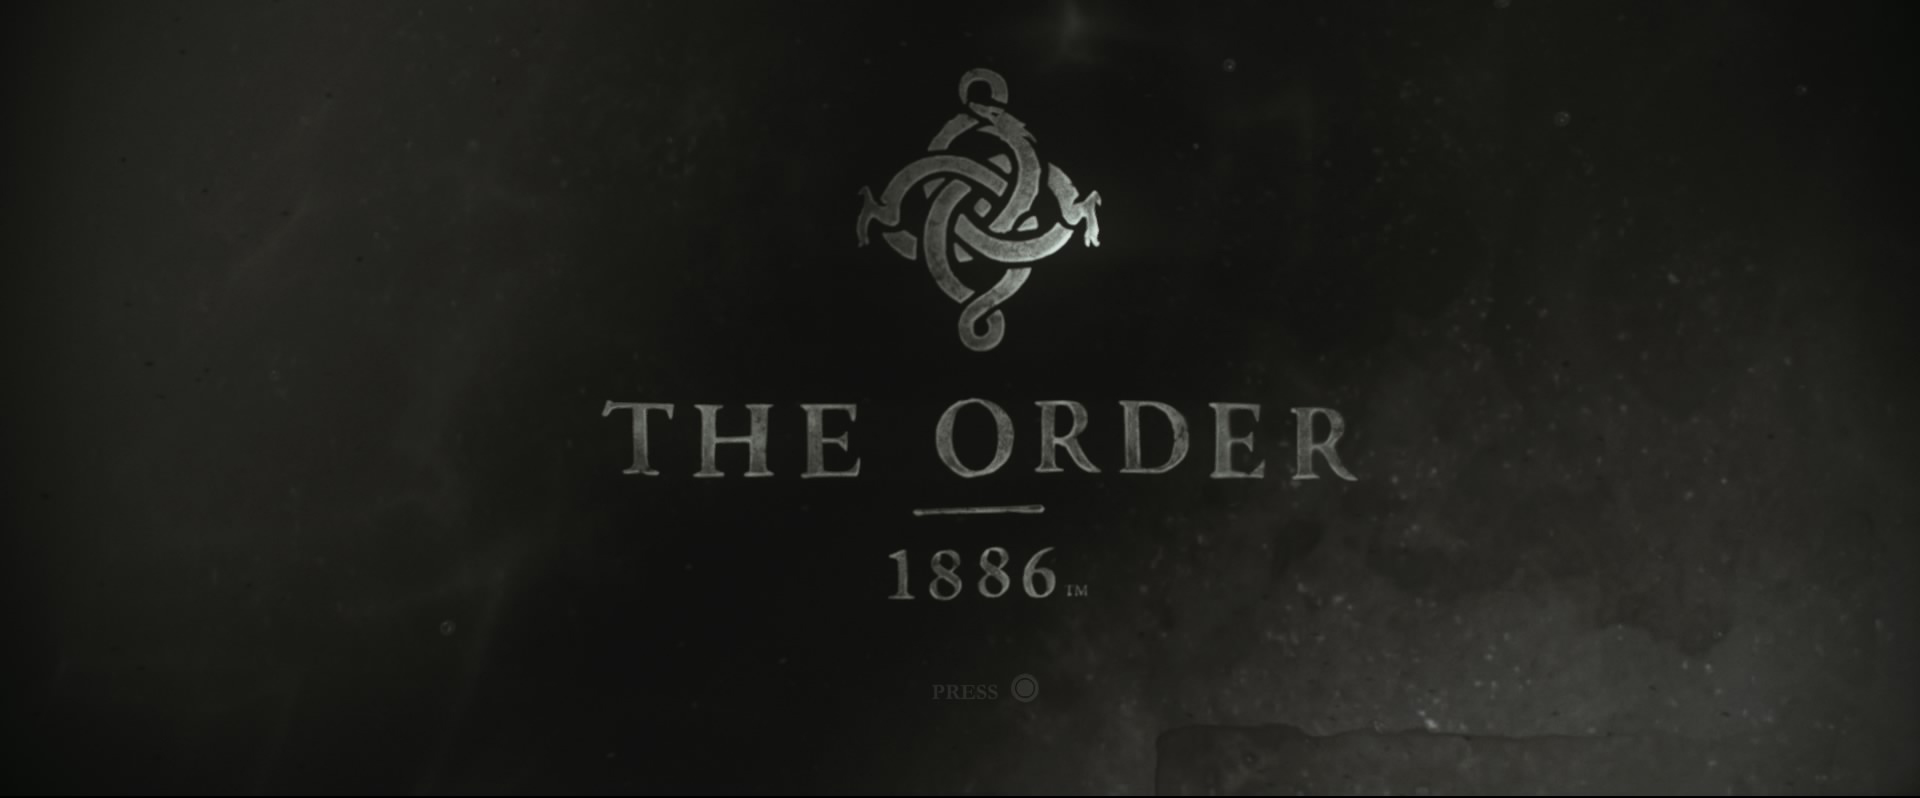 The Order  1886 20150219001606 - The Order: 1886 Review